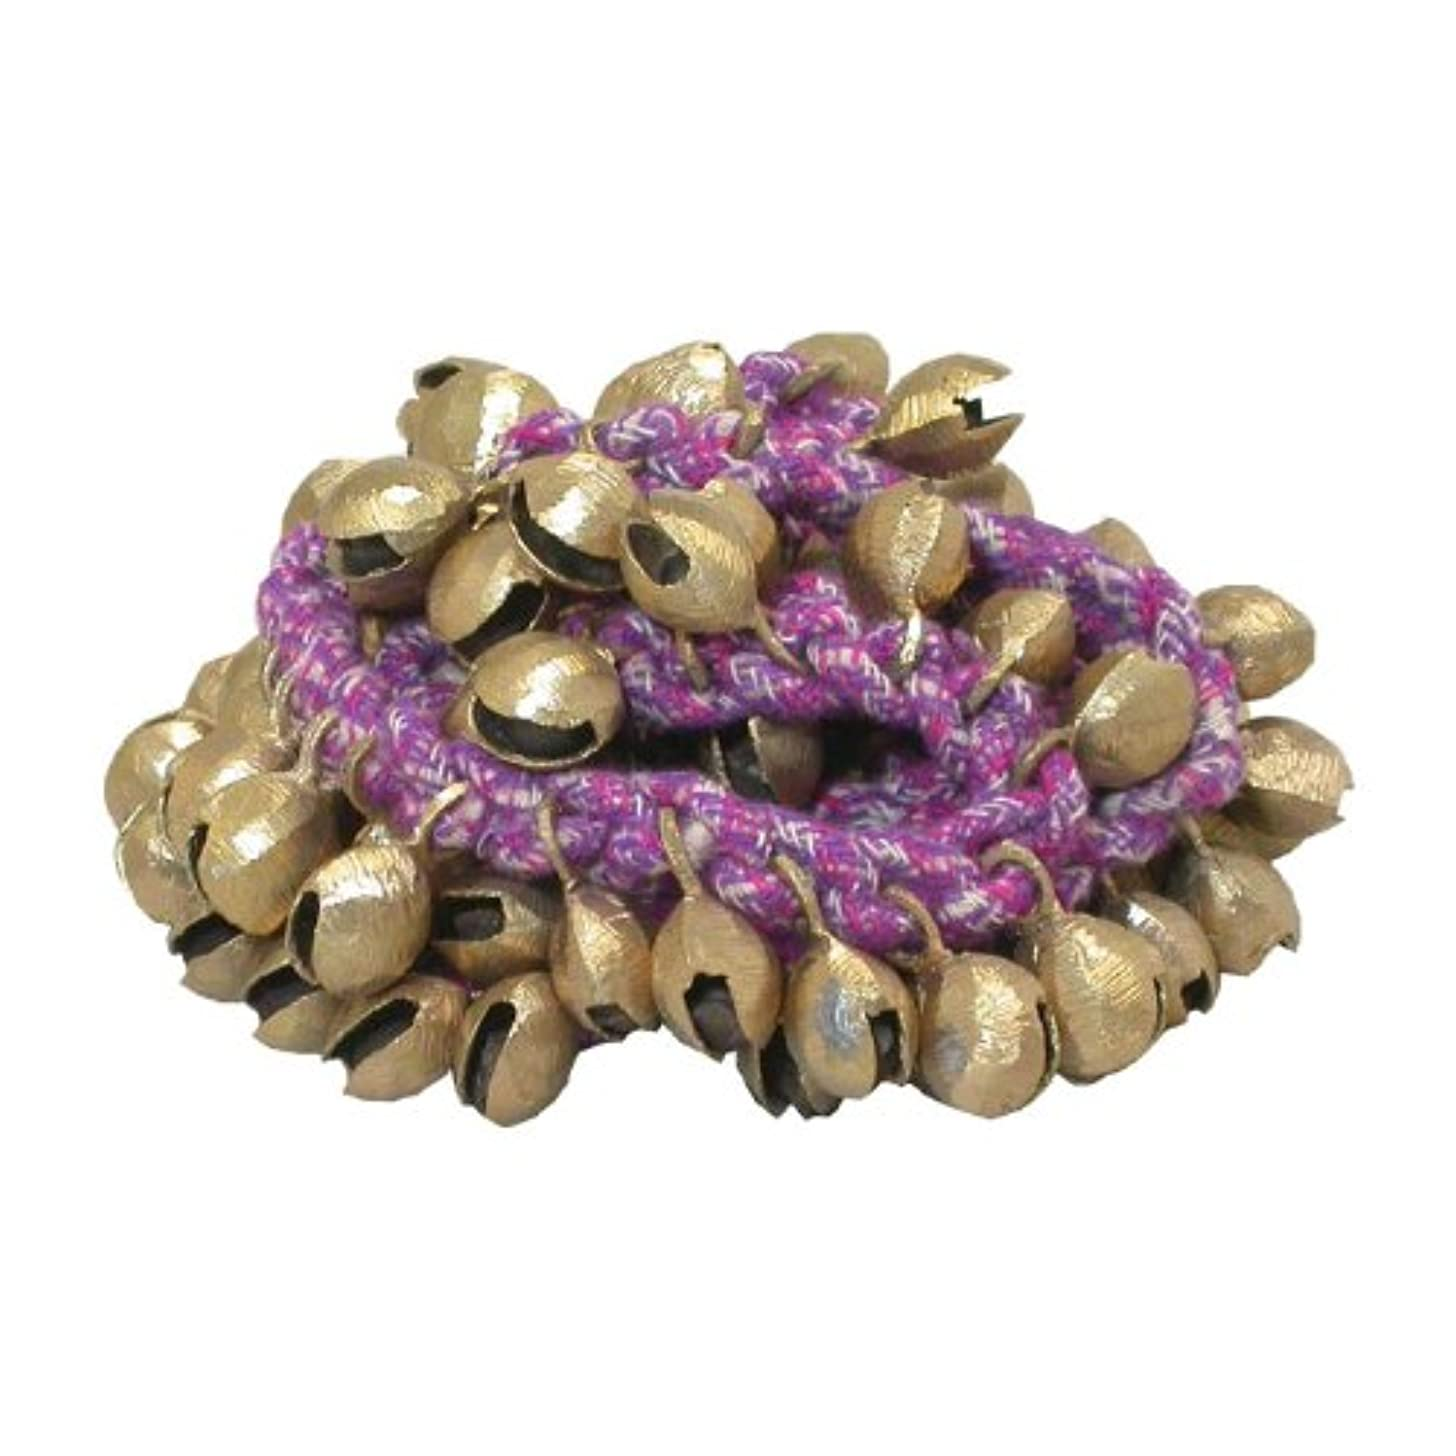 Ankle Clam Bells, 50 on a String